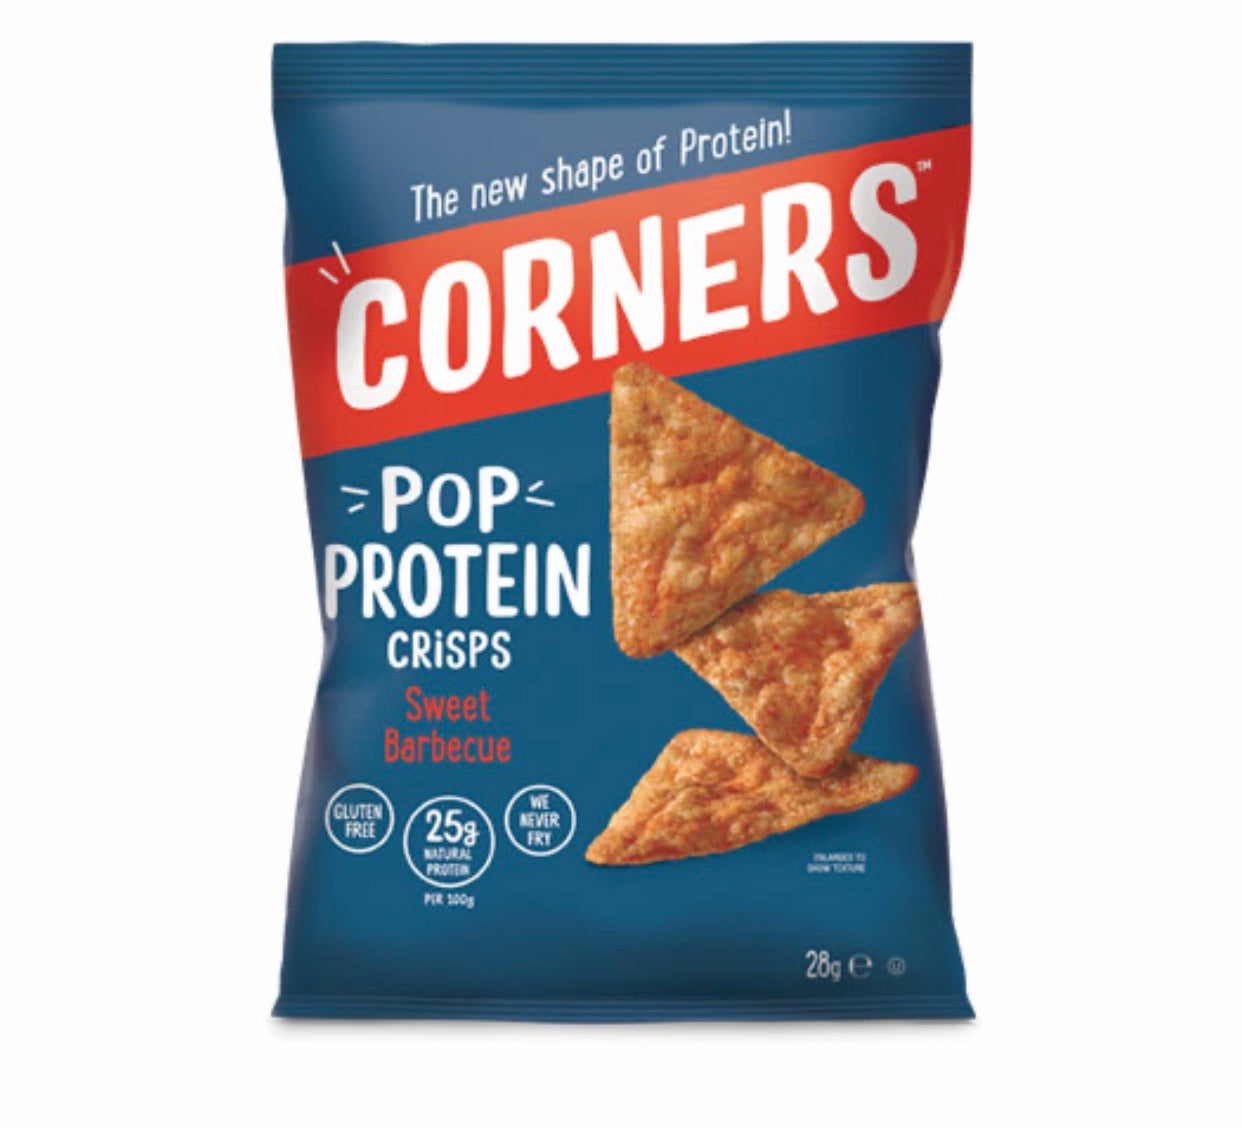 Corners Pop Protein Crisps - Sweet Barbecue